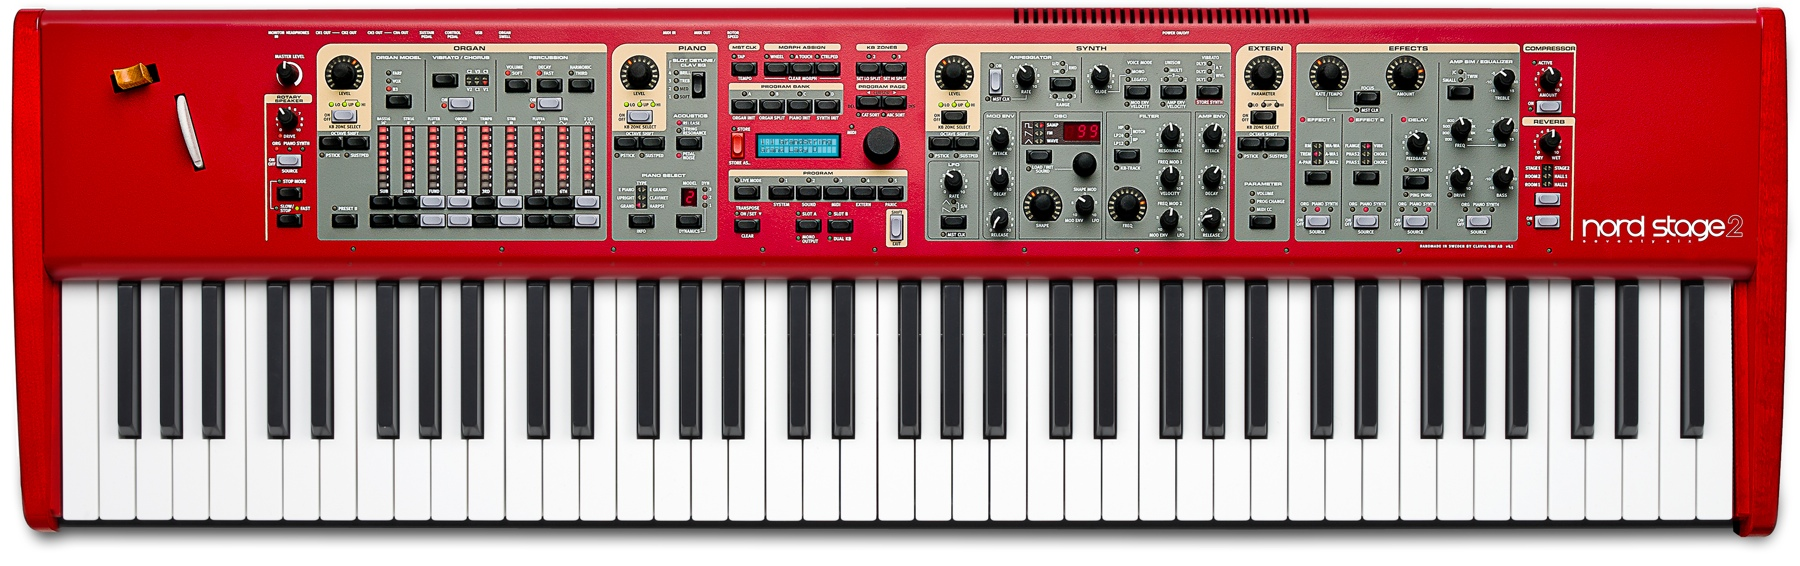 Nord stage 2 ex hp76 keyboard nstage2-ex-hp76 b&h photo video.